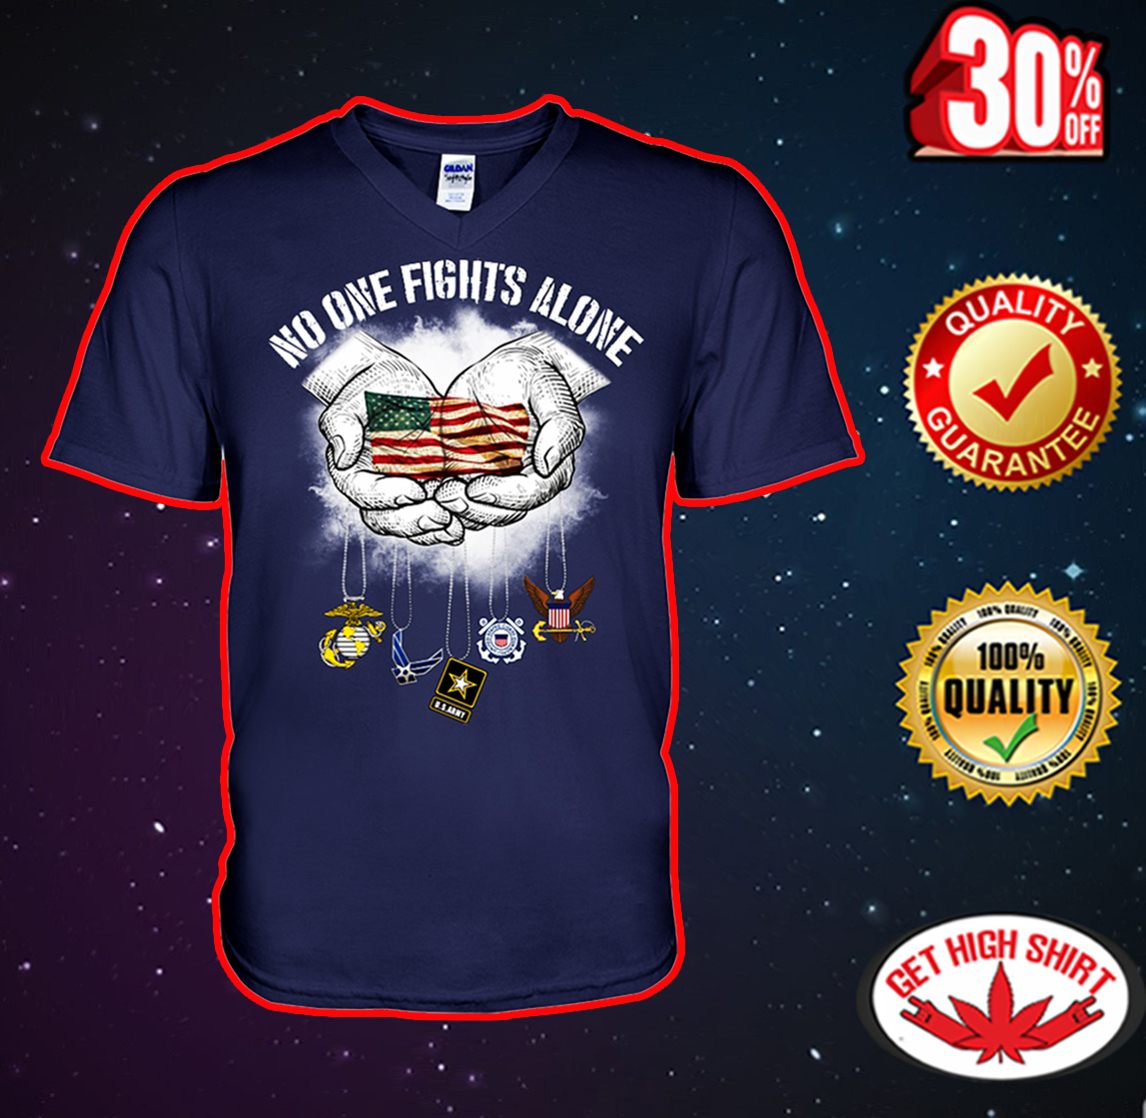 No one fights alone American flag v-neck